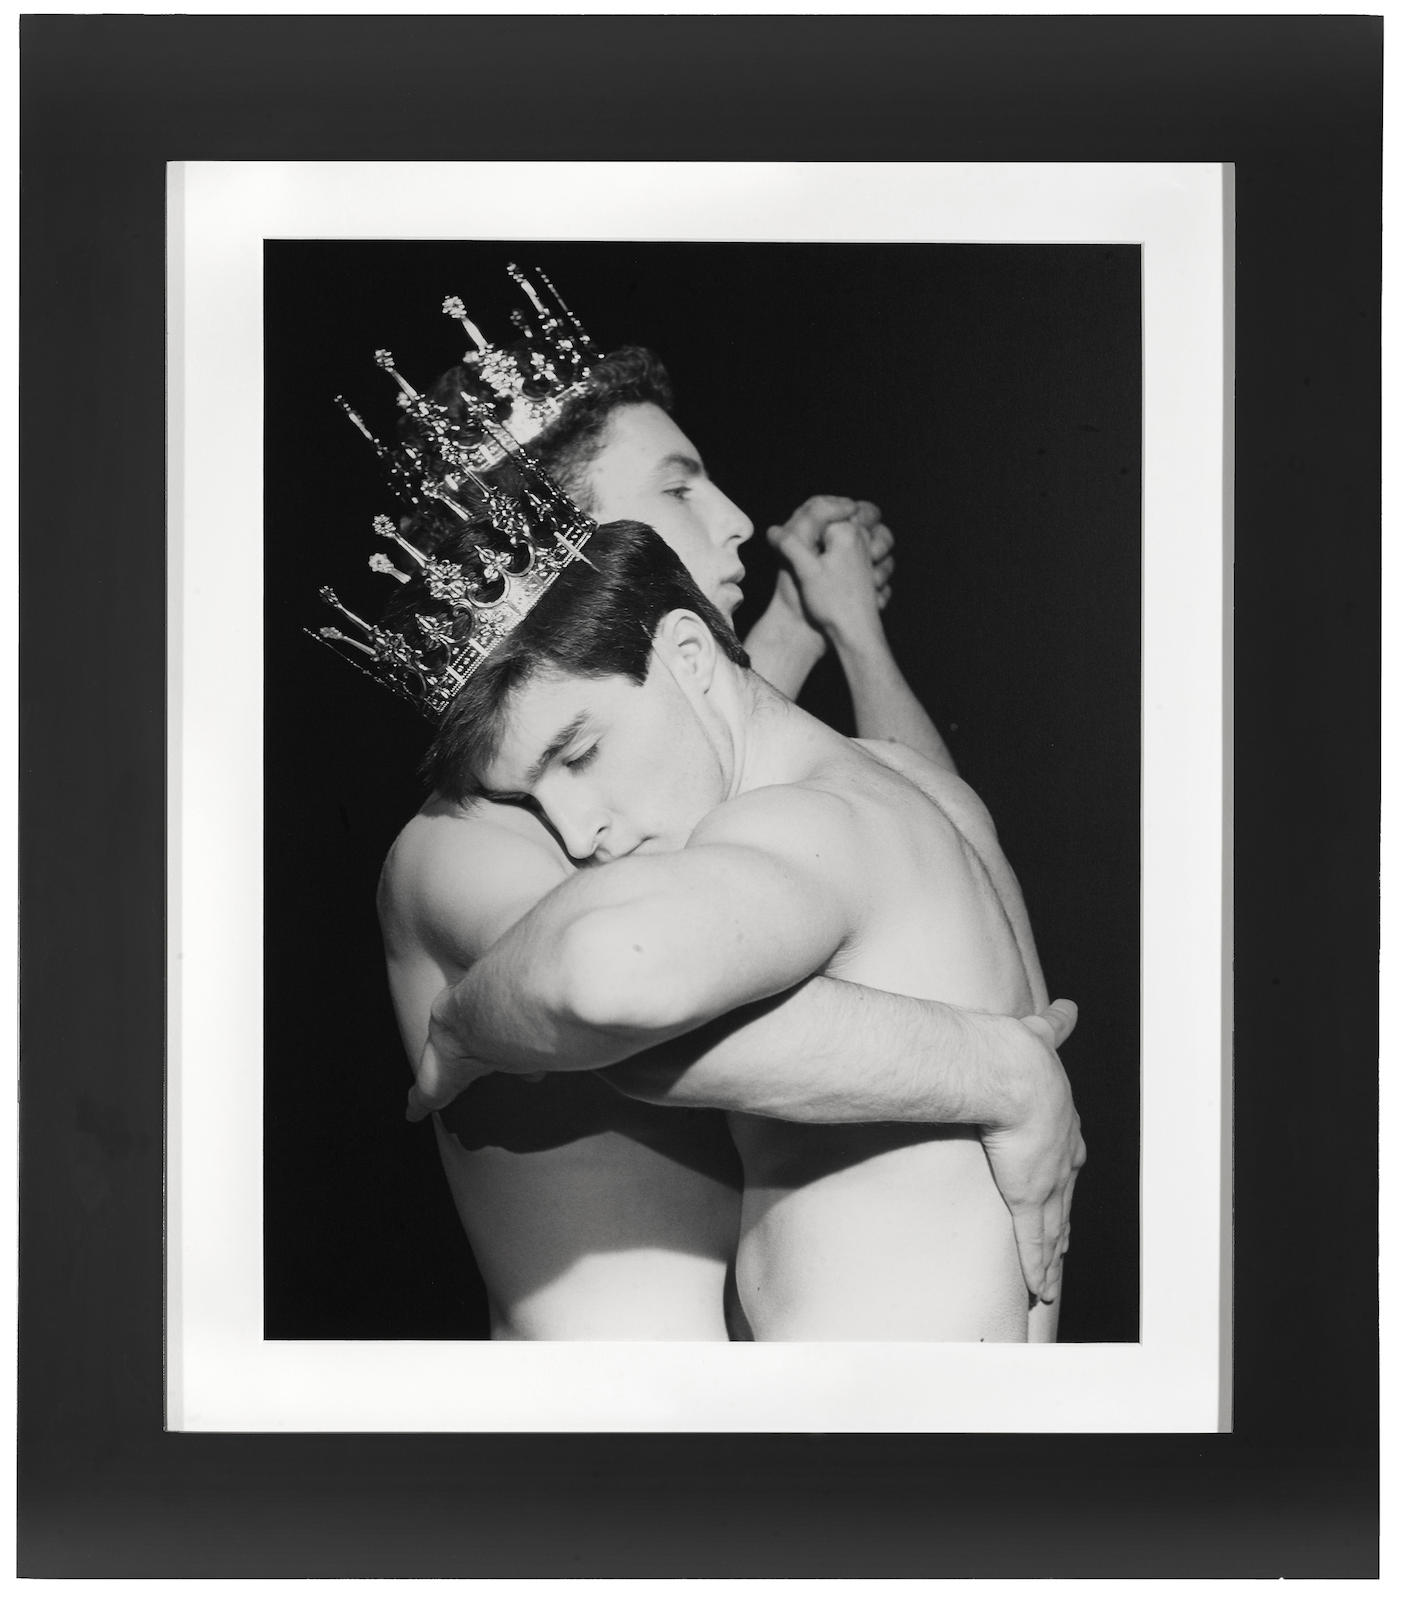 Robert Mapplethorpe-Two Men Dancing-1984